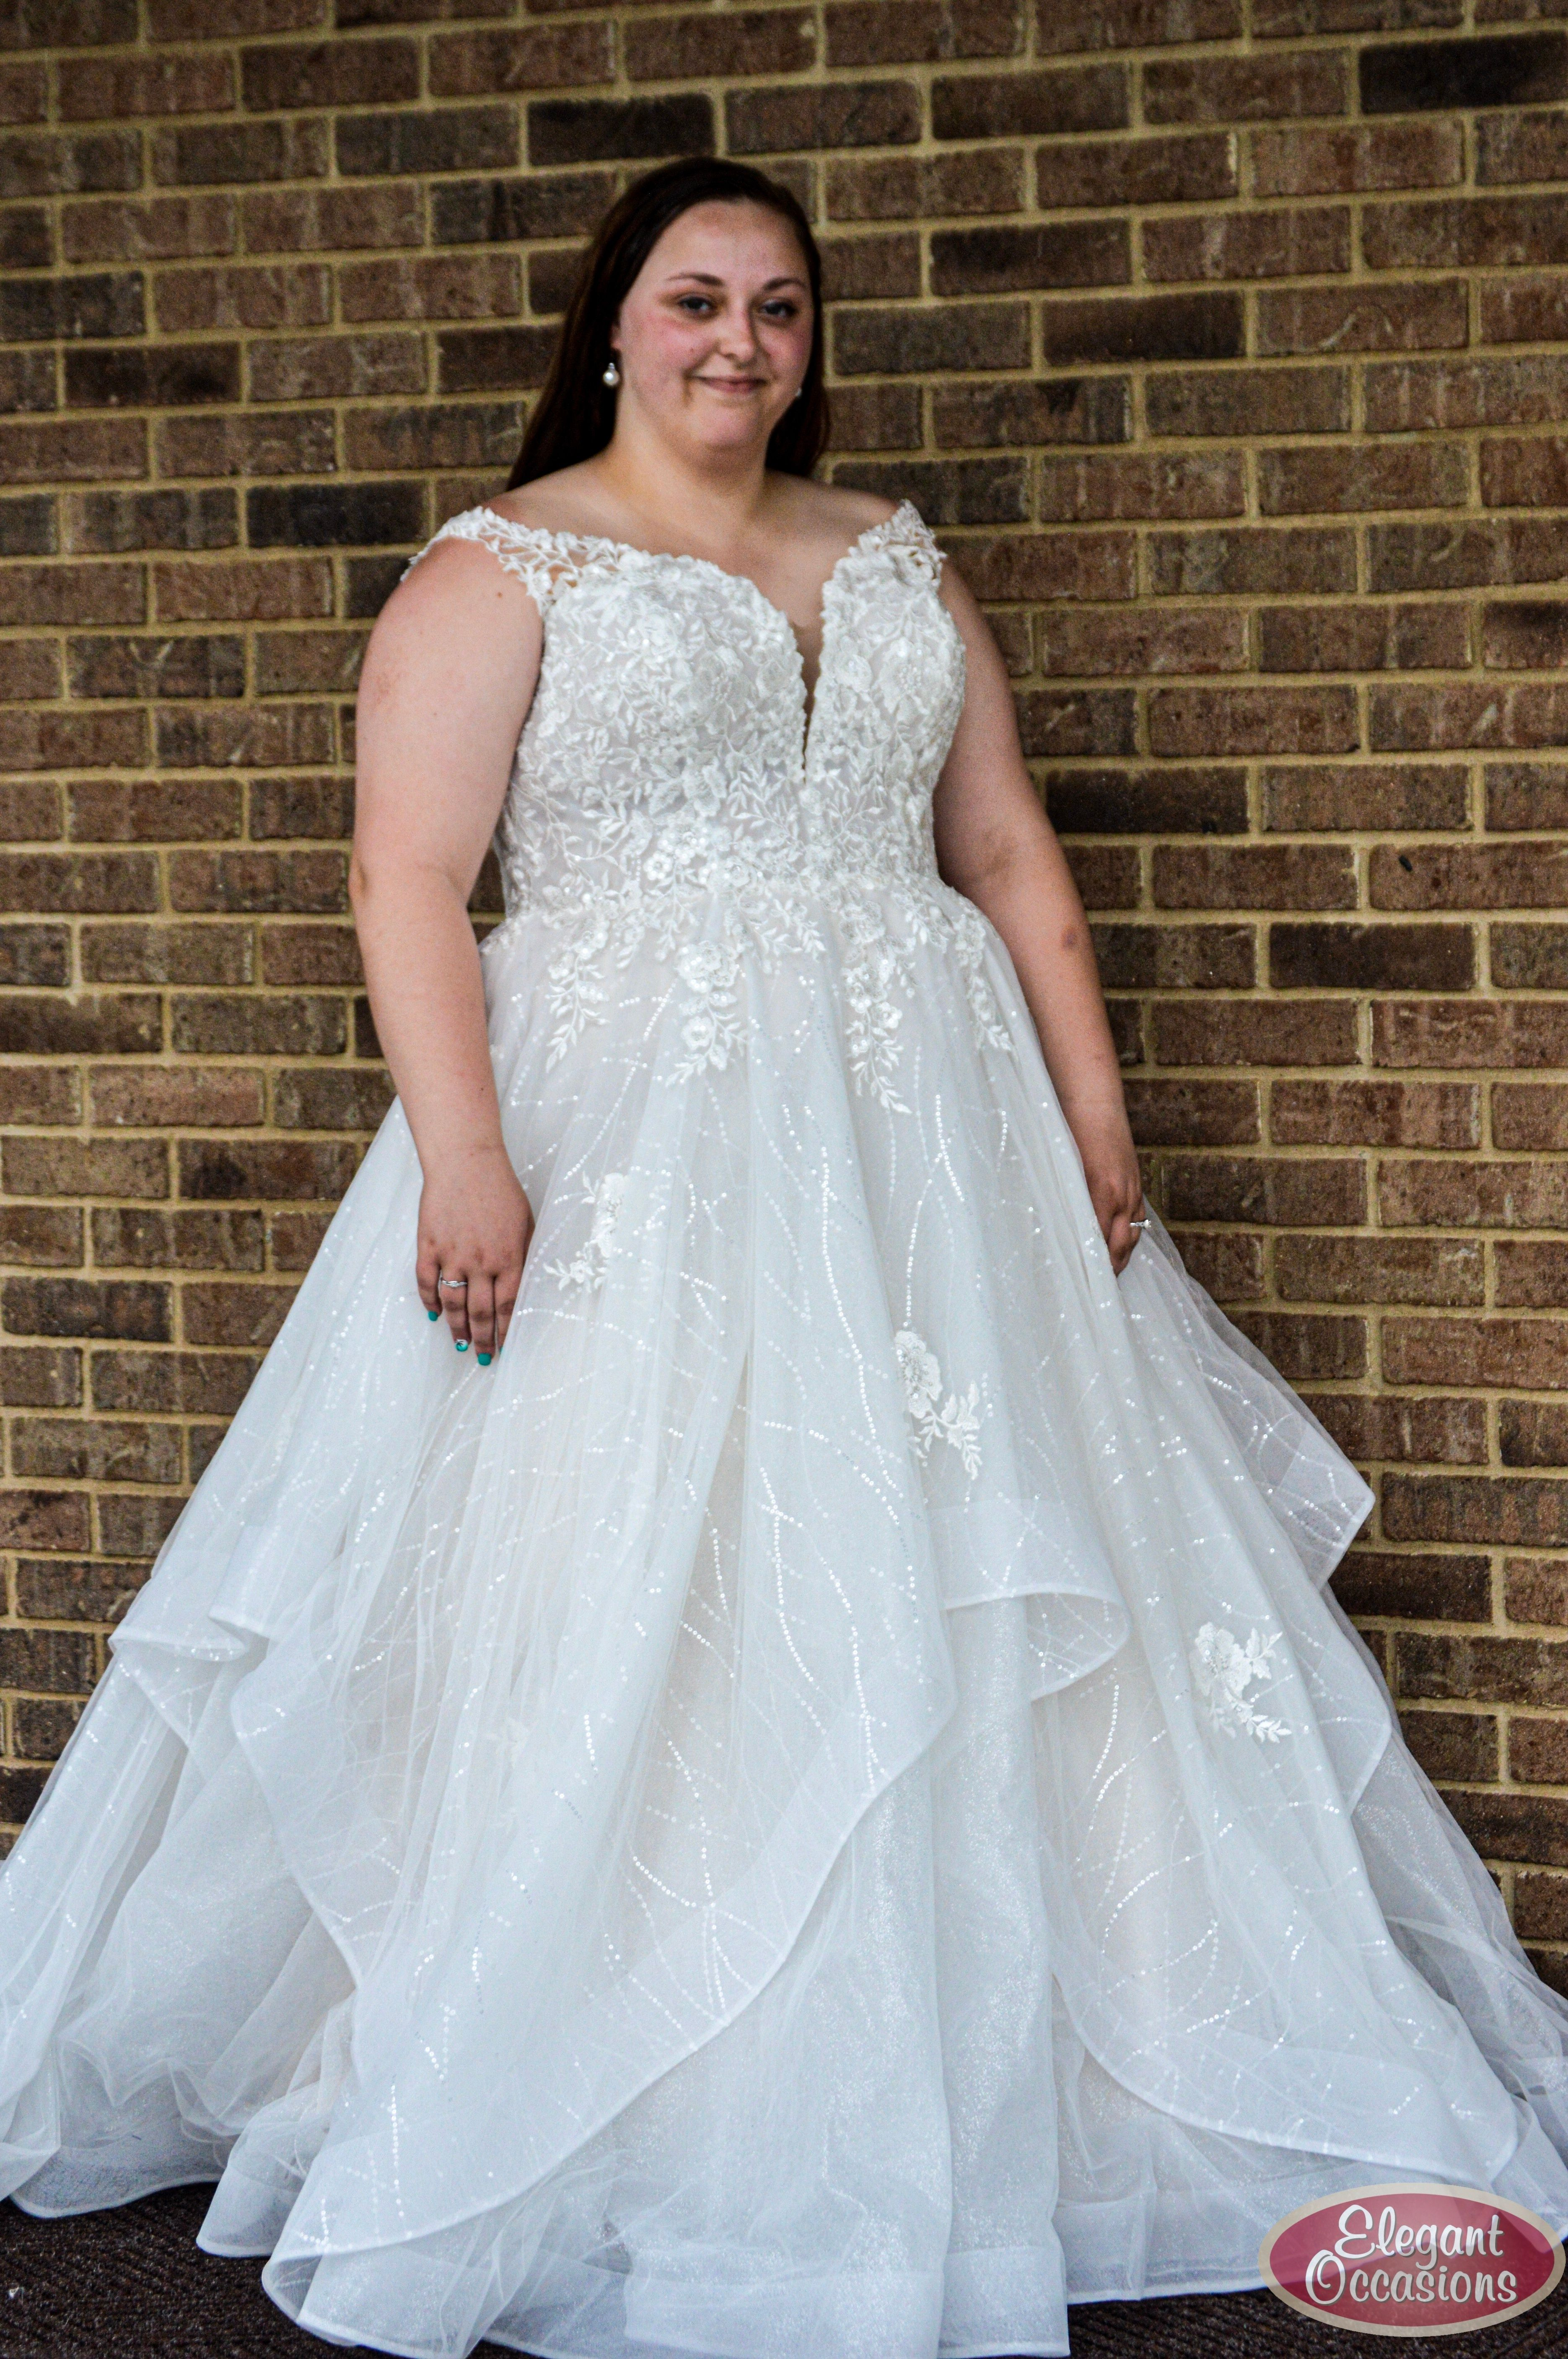 Plus Size Wedding Dress With Layered Skirt And Straps Wedding Dresses Sparkle Wedding Dress Bridesmaid Dresses Plus Size [ 5627 x 3741 Pixel ]